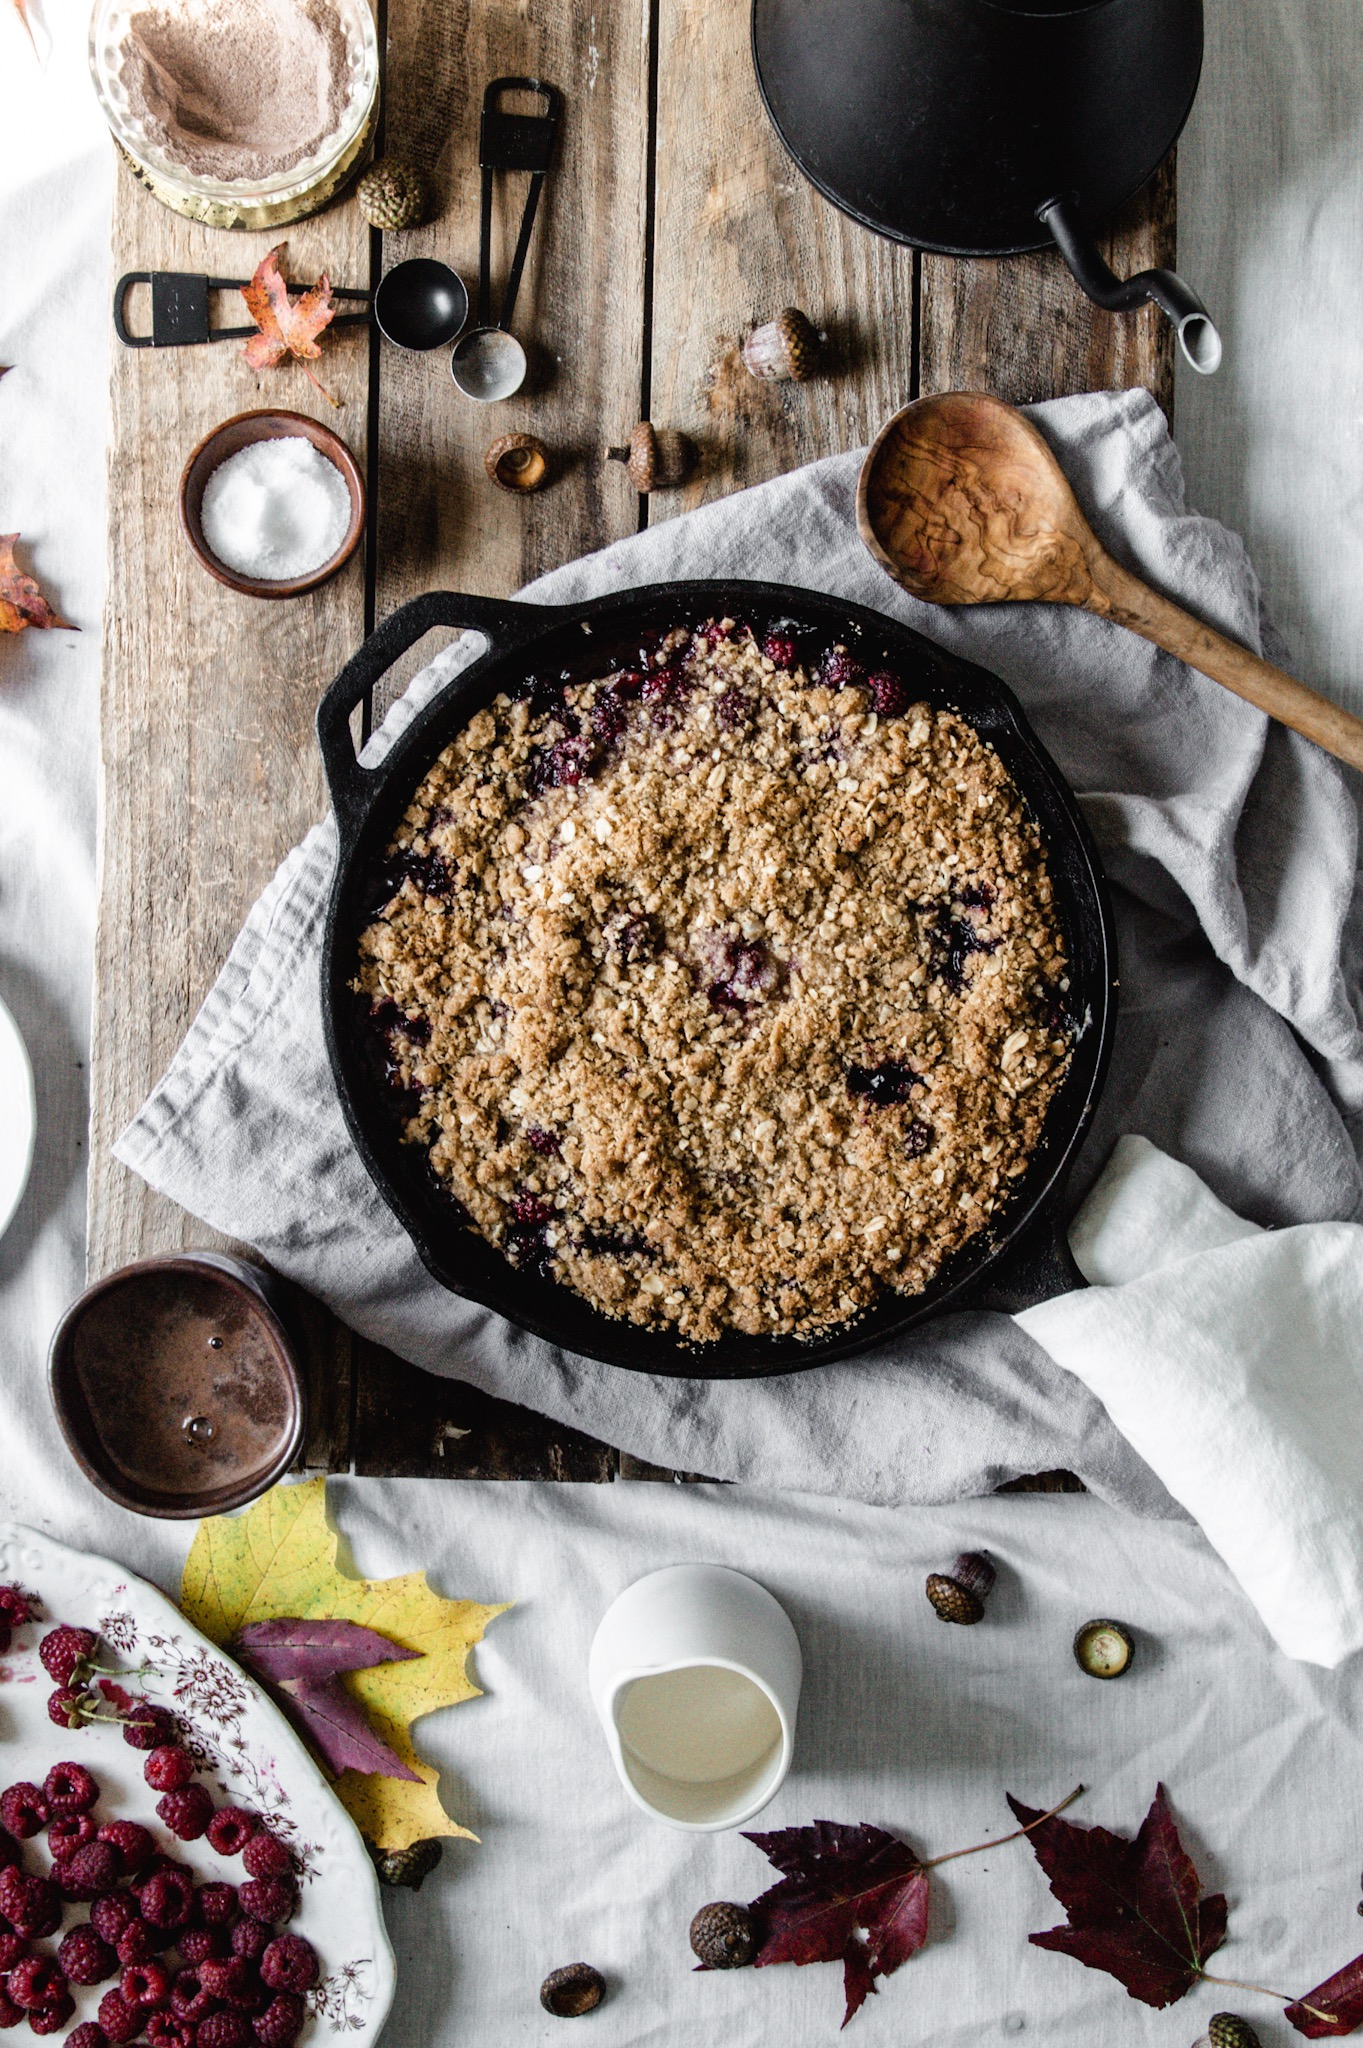 raspberries make up the fruit in this crumble with a crunchy oat topping.